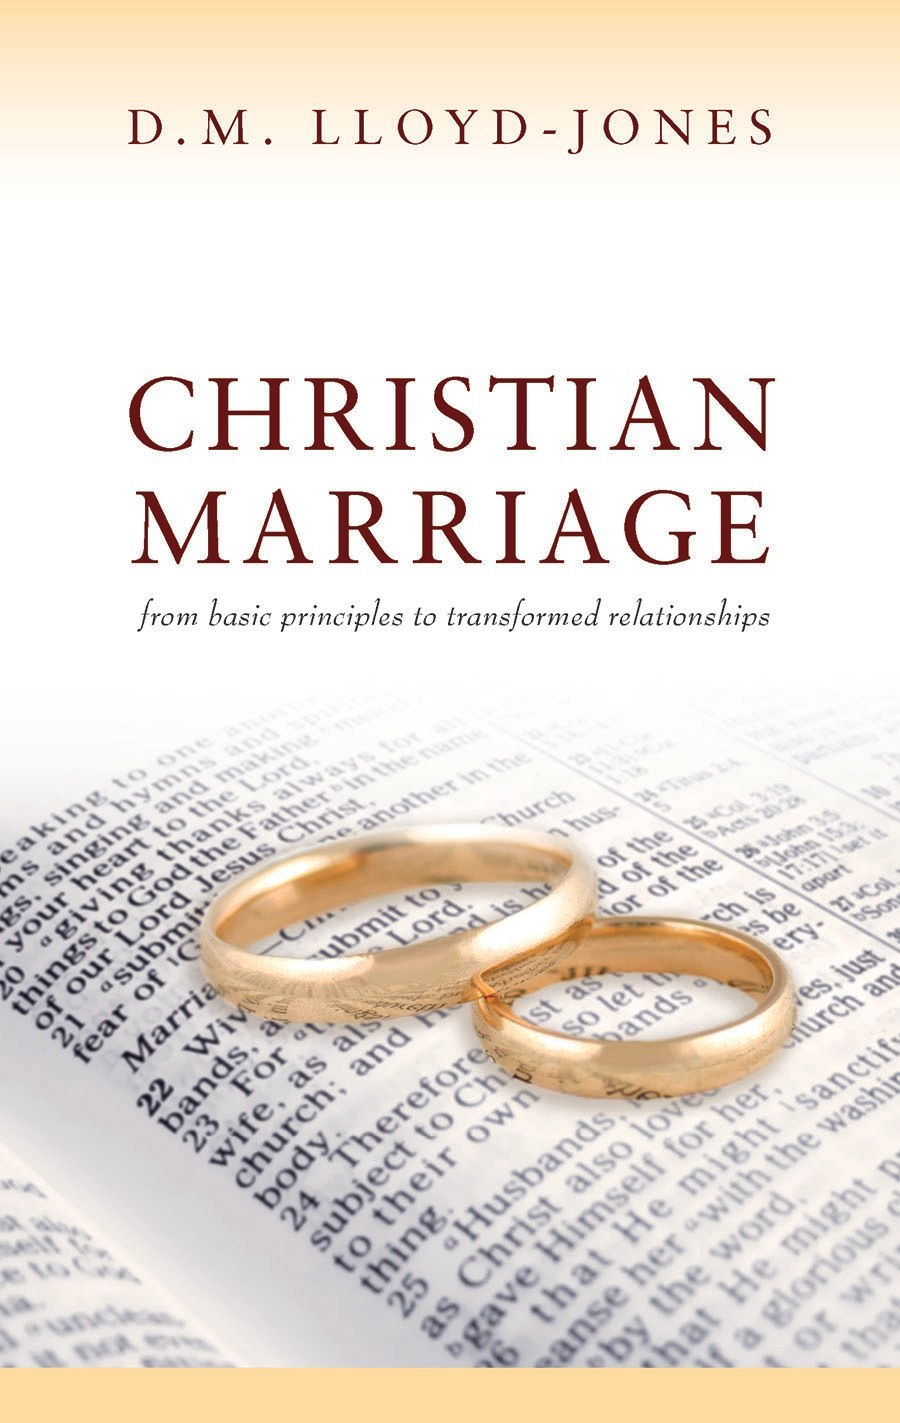 christian marriage Question: what should be different about a christian marriage answer: the primary difference between a christian marriage and a non-christian marriage is that christ is the center of the marriage when two people are united in christ, their goal is to grow in christlikeness throughout the life of the marriage.